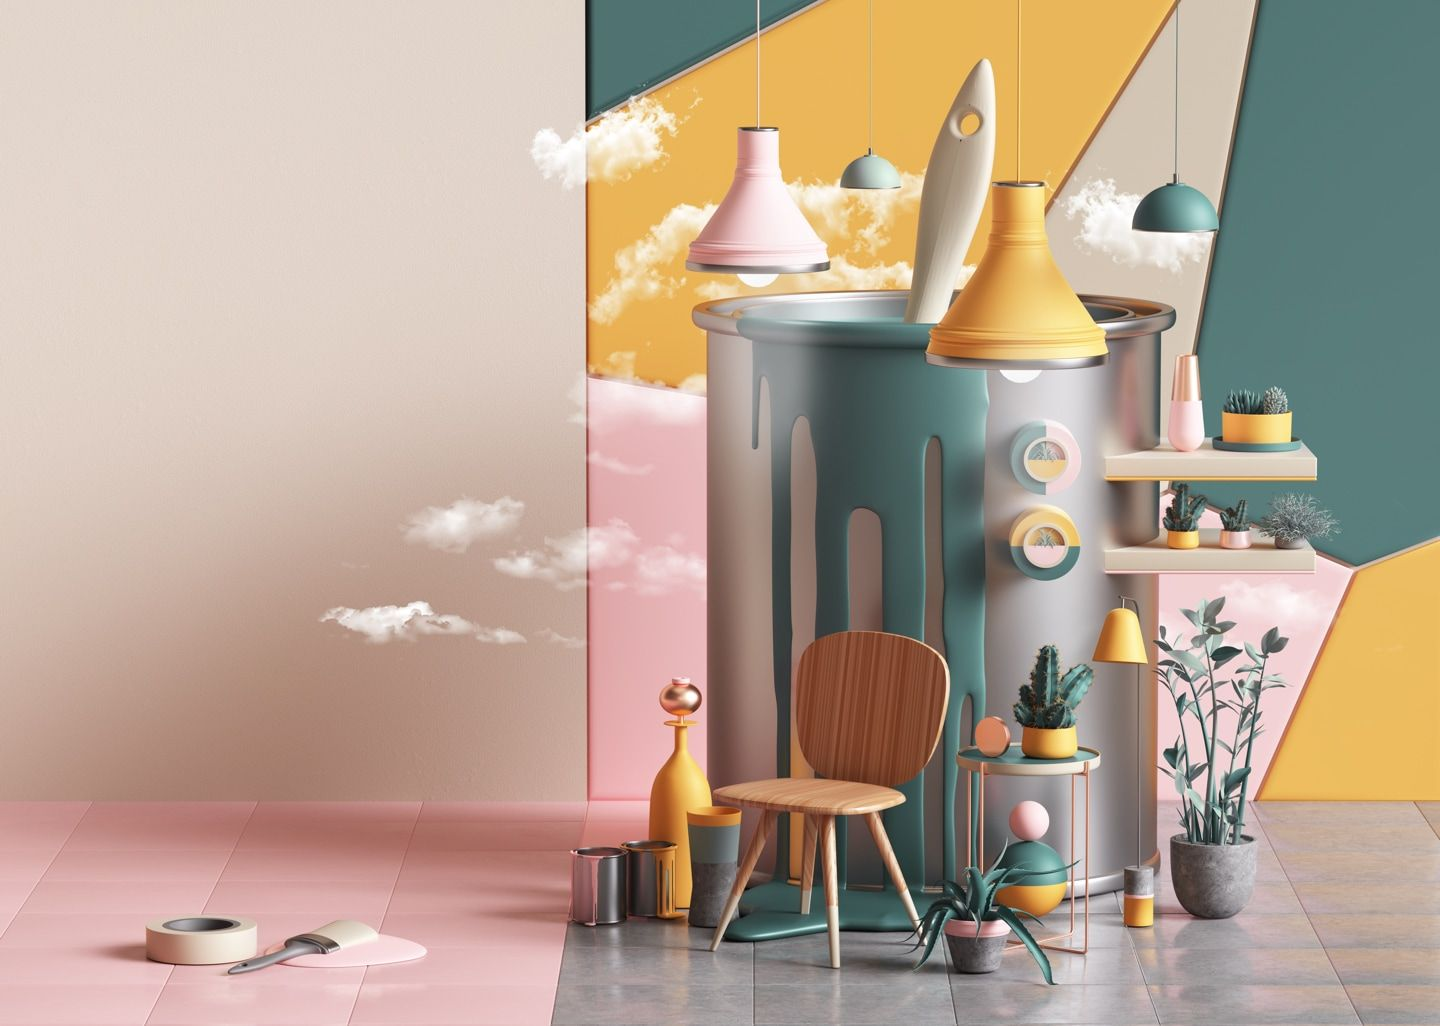 Pinterest predicts the top 10 home decor trends for 2019